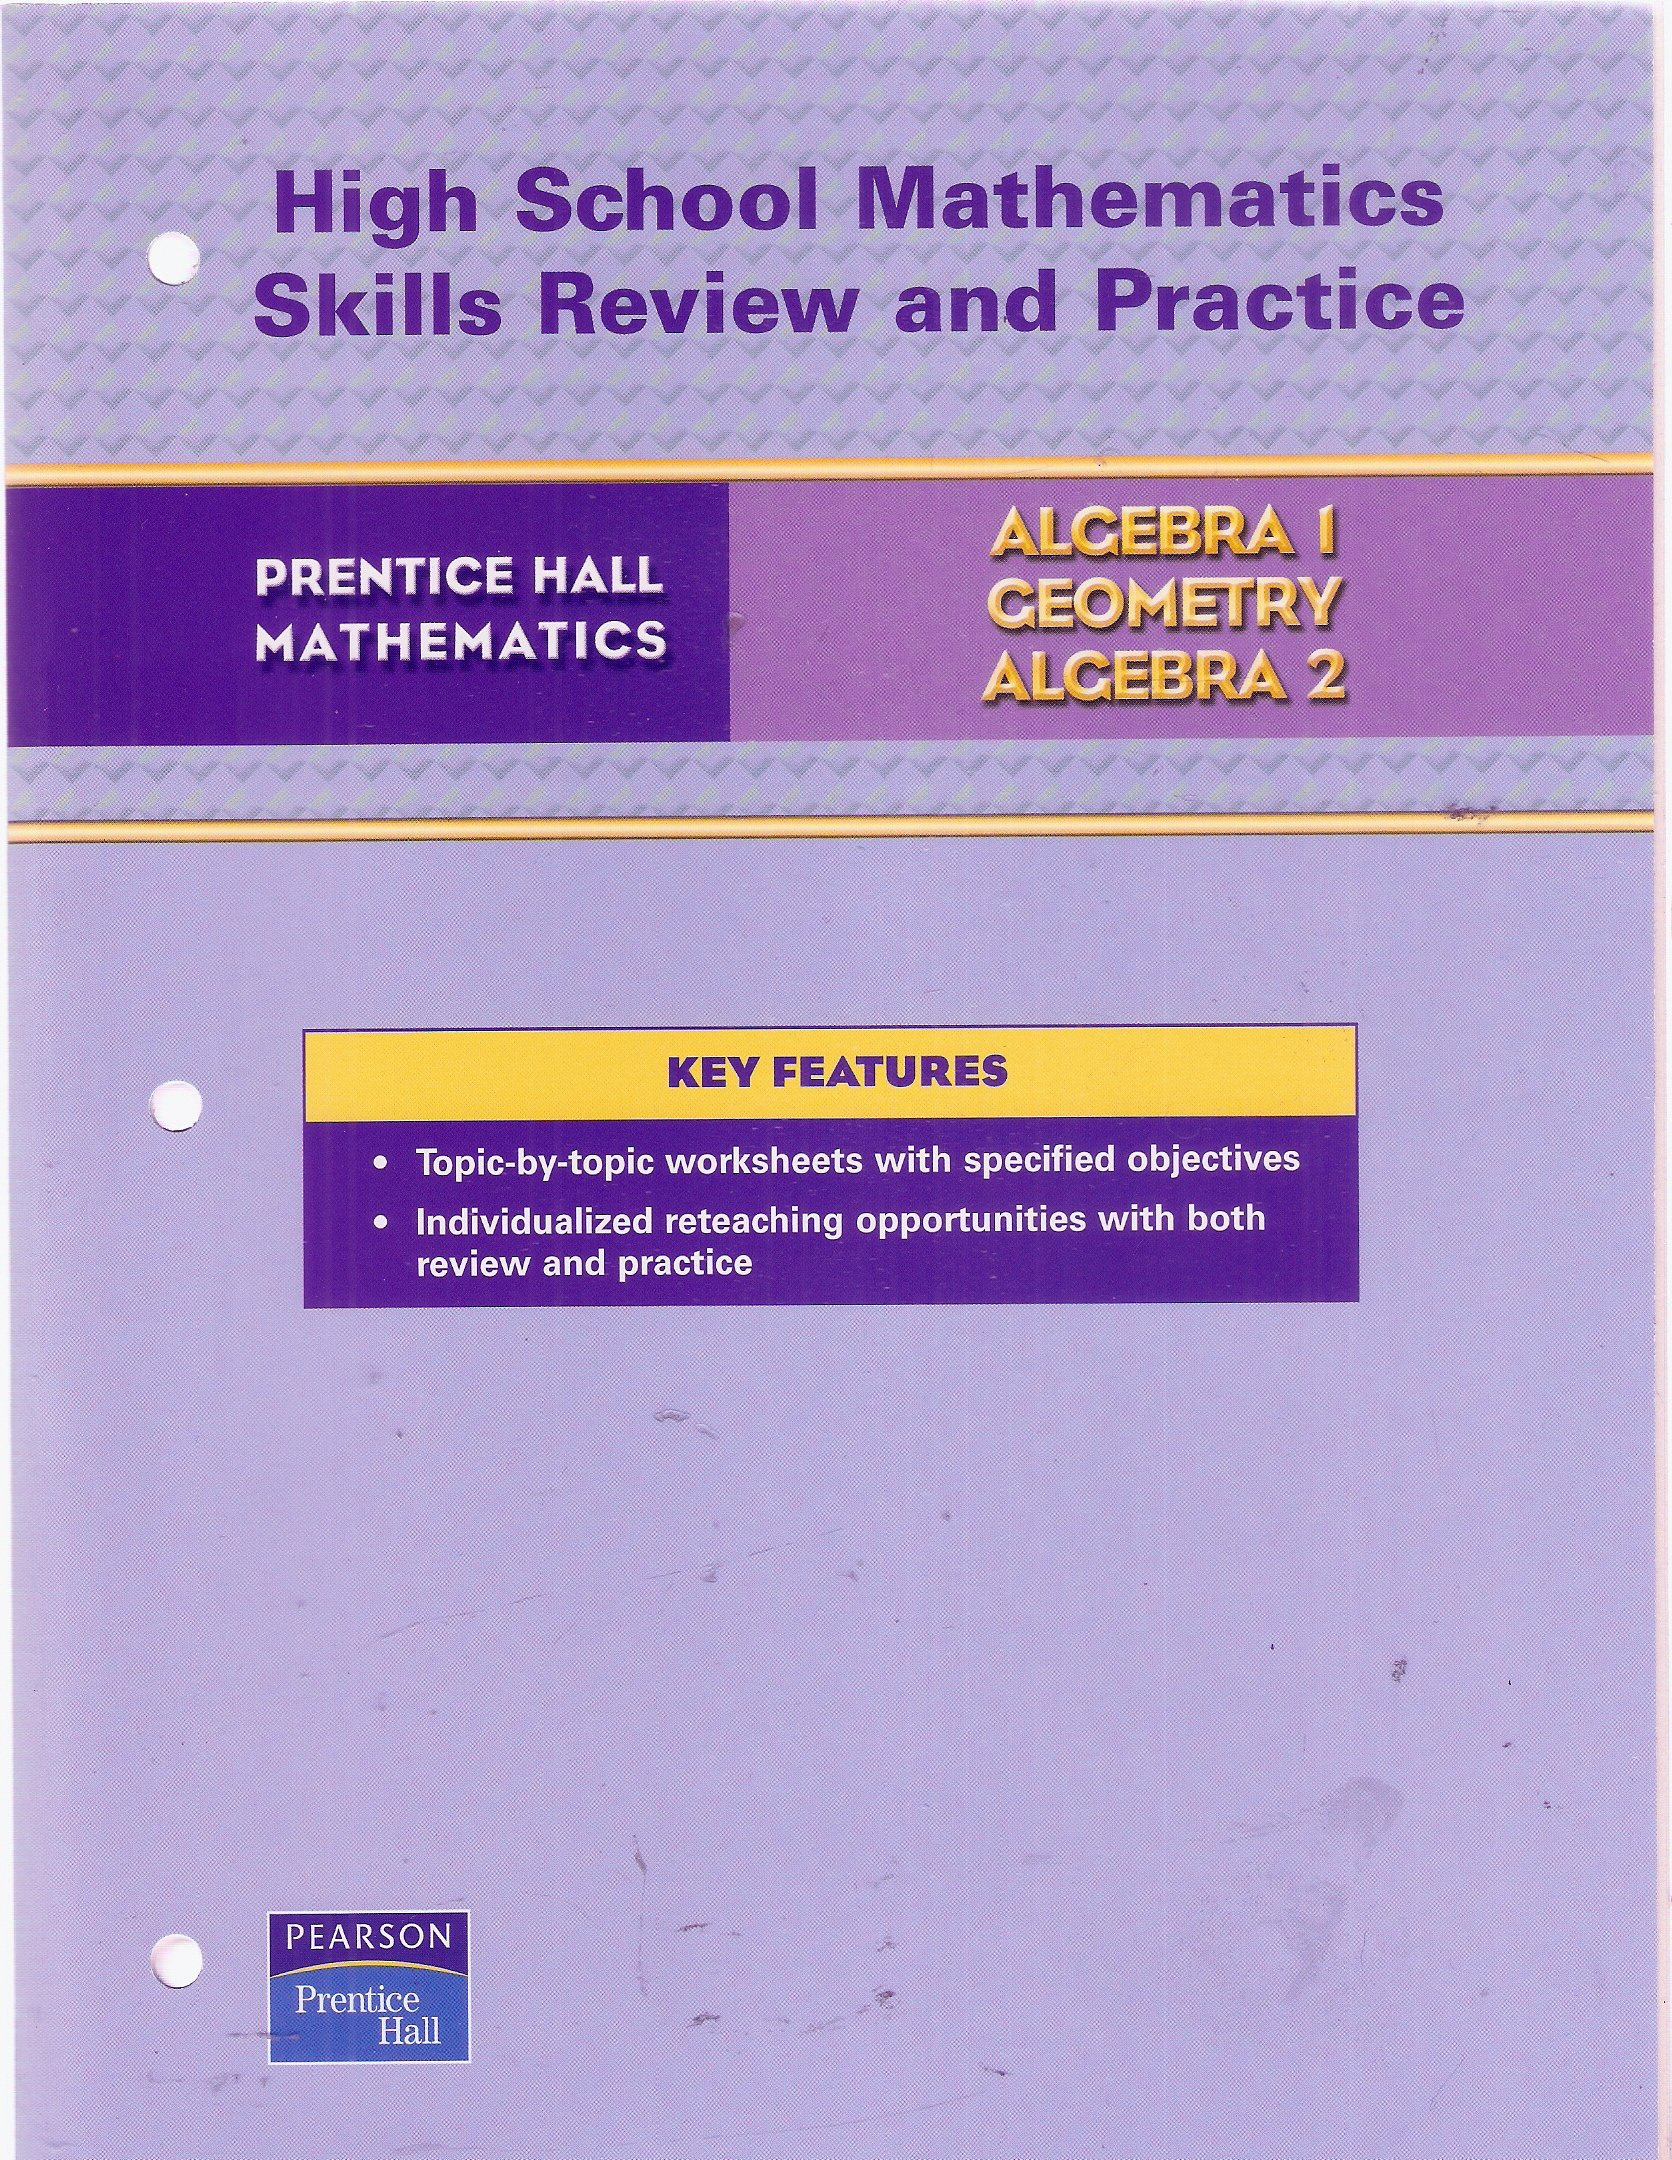 Prentice Hall Mathematics for Grades 9, 10, & 11: Algebra 1